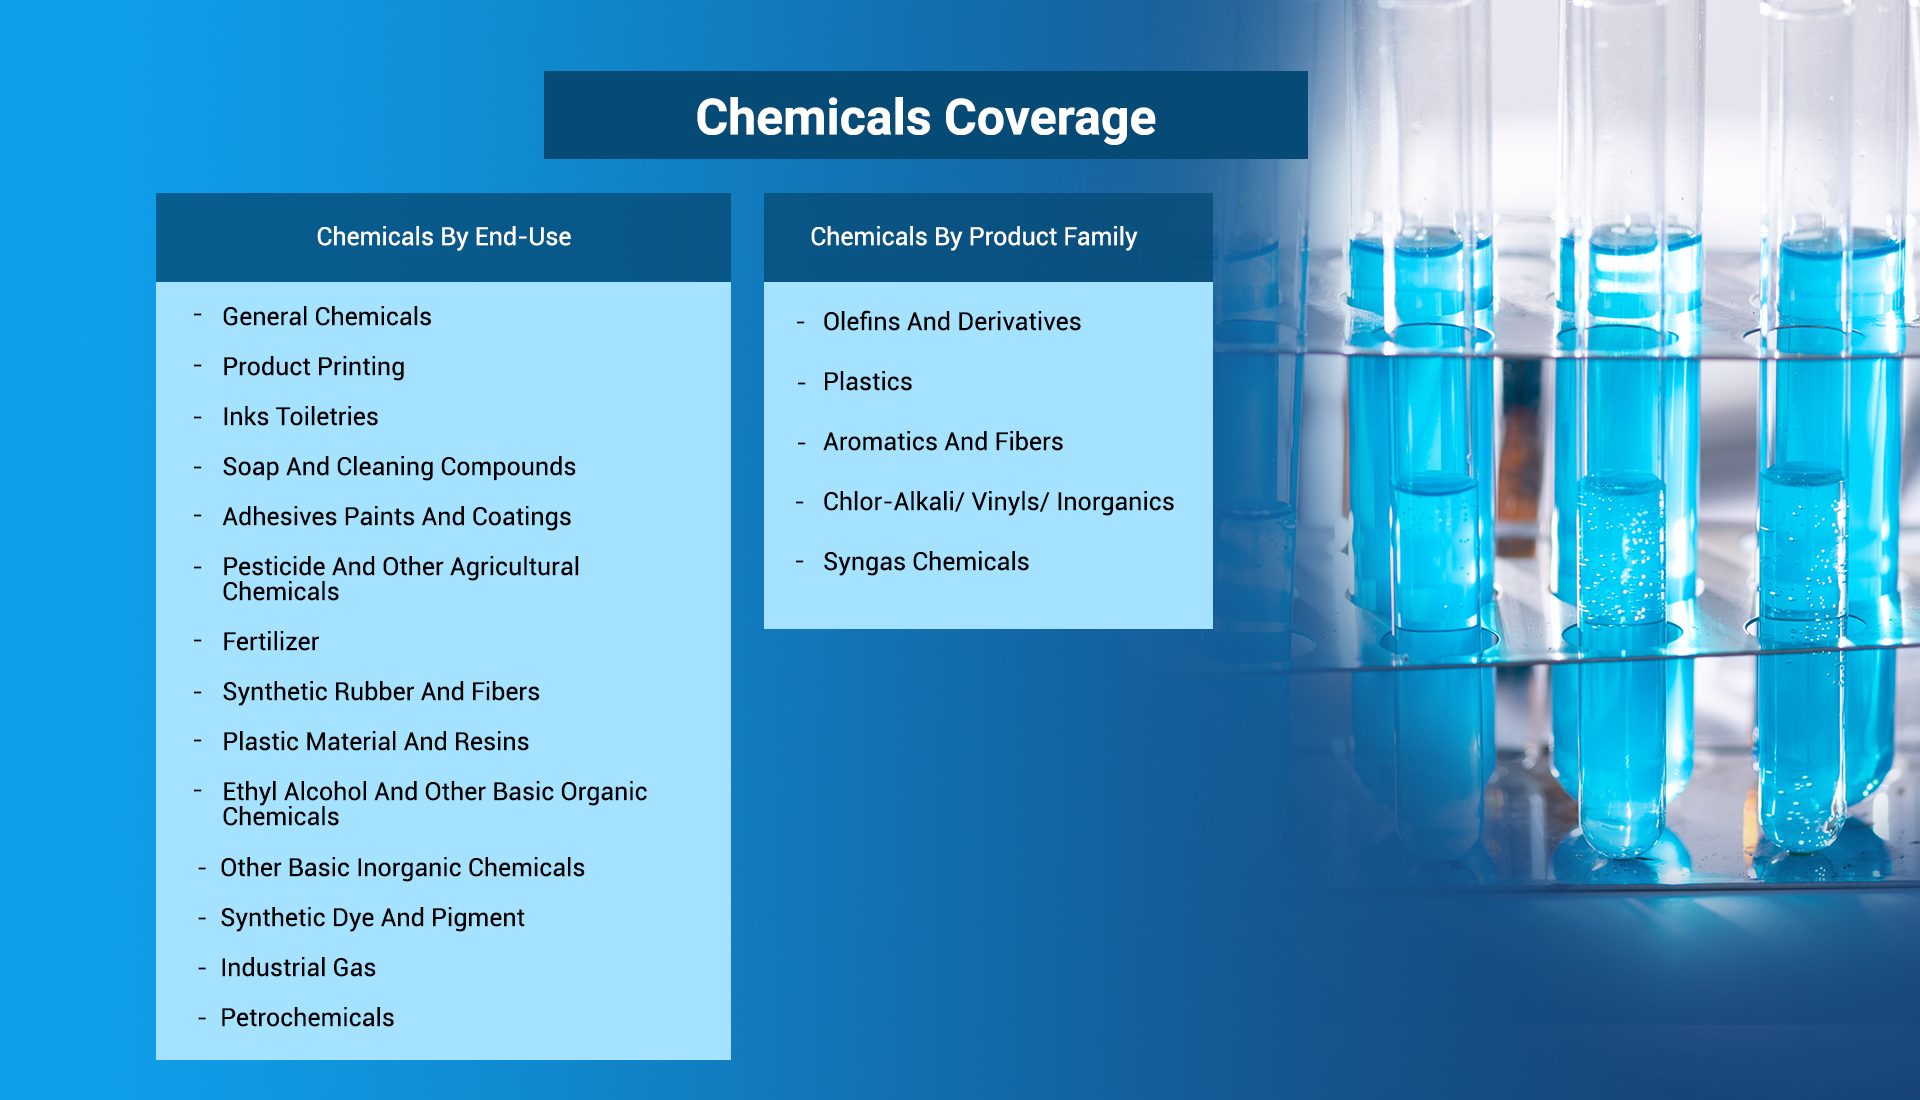 Chemicals Coverage